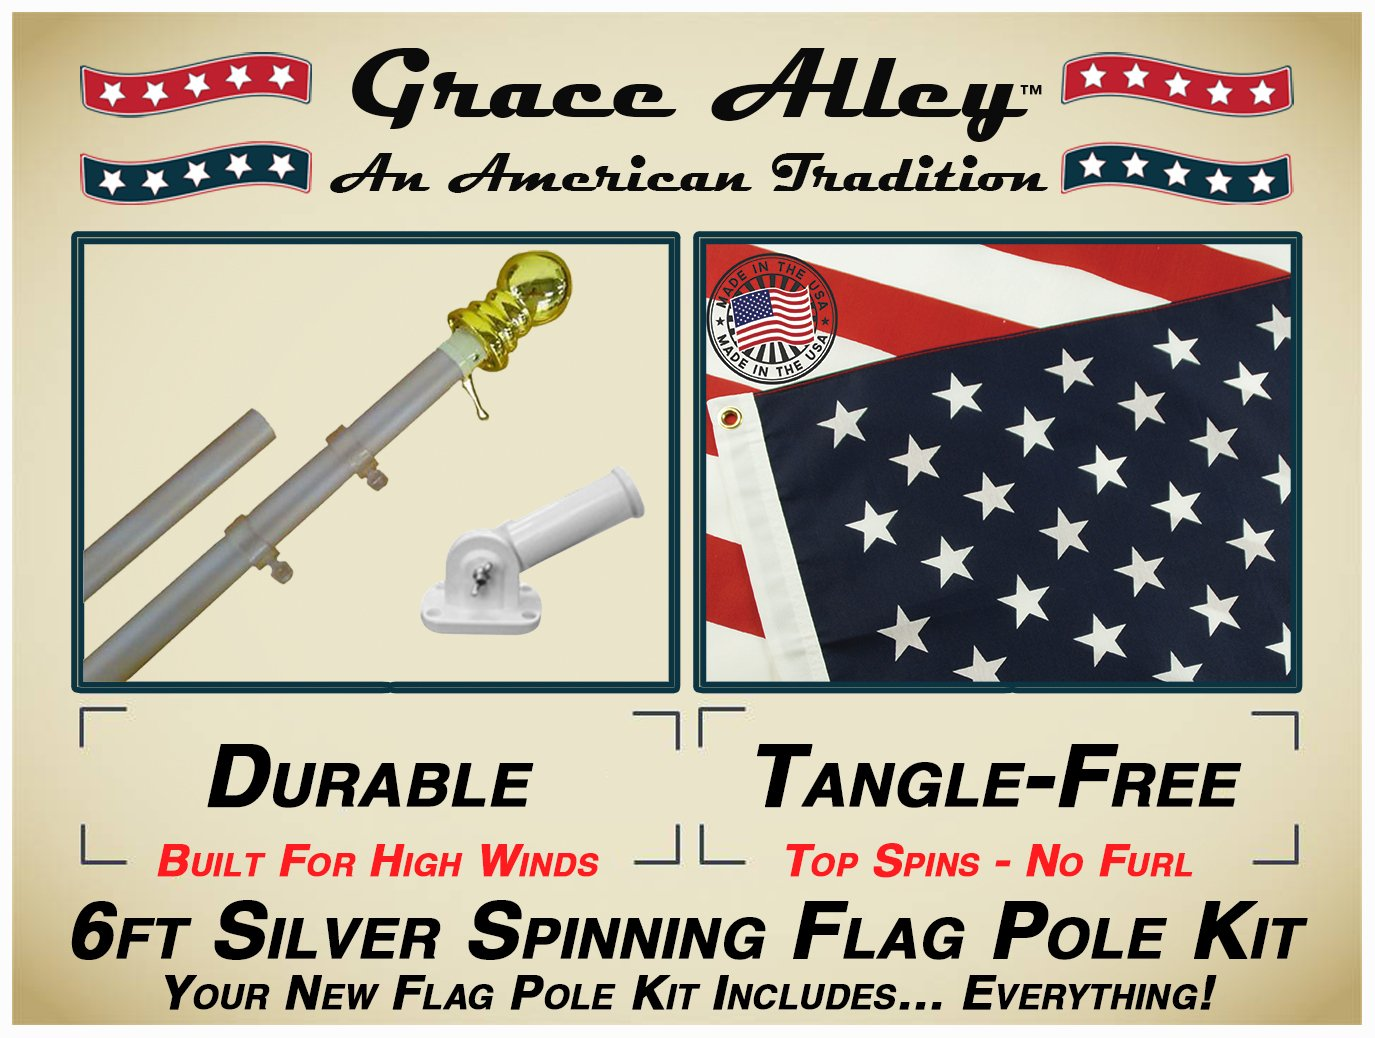 Grace Alley Flag Pole Kit: Tangle Free Flag Pole Kit Includes US Flag - Made in USA, Outdoor Flag Pole and Flag Pole Bracket. Great for Residential or Commercial. Brushed Aluminum Flag Pole Kit